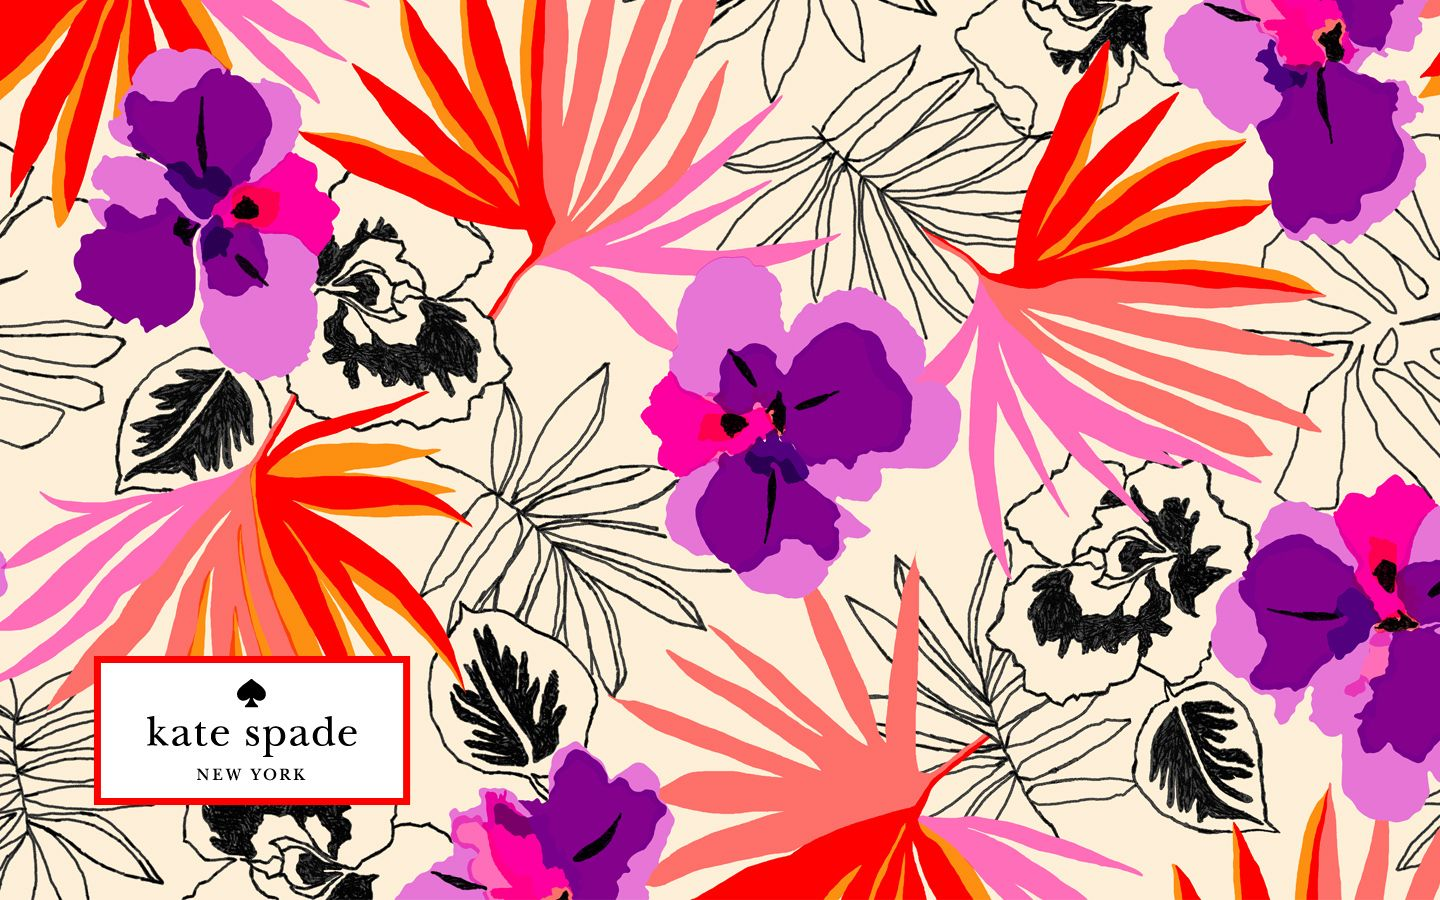 Desktop Wallpaper Kate Spade Kate Spade Desktop Wallpaper Kate Spade Wallpaper Kate Spade Desktop